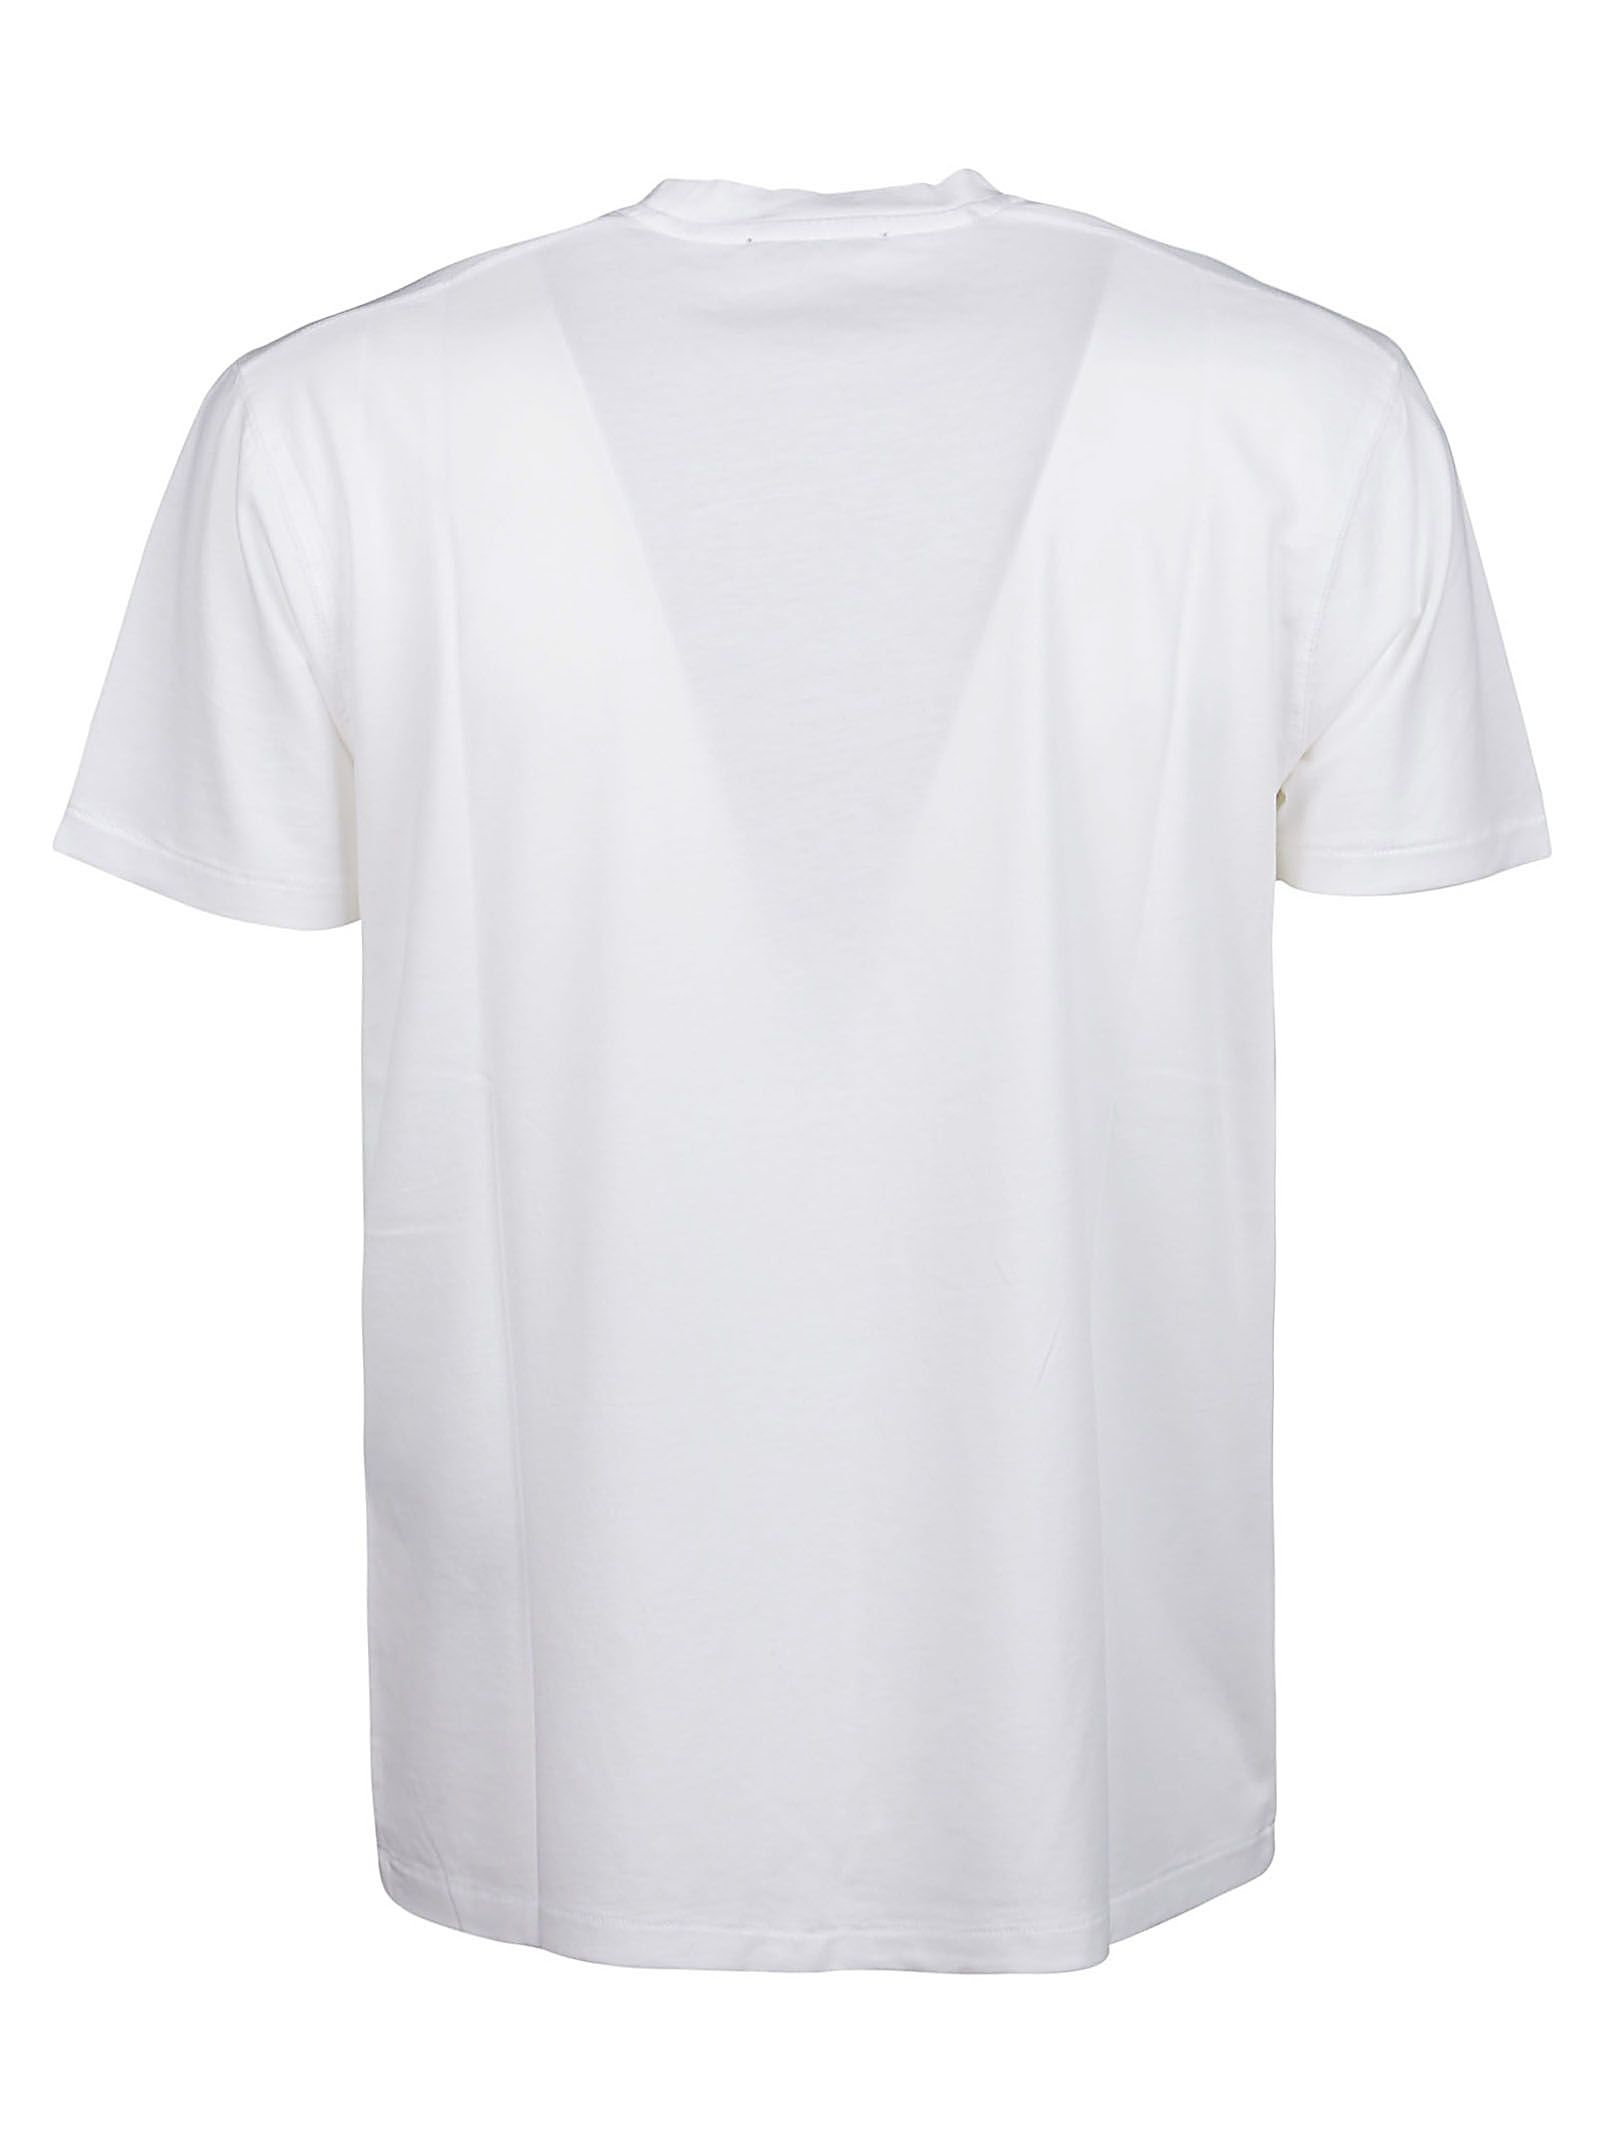 TOM FORD Cottons TOM FORD MEN'S WHITE OTHER MATERIALS T-SHIRT